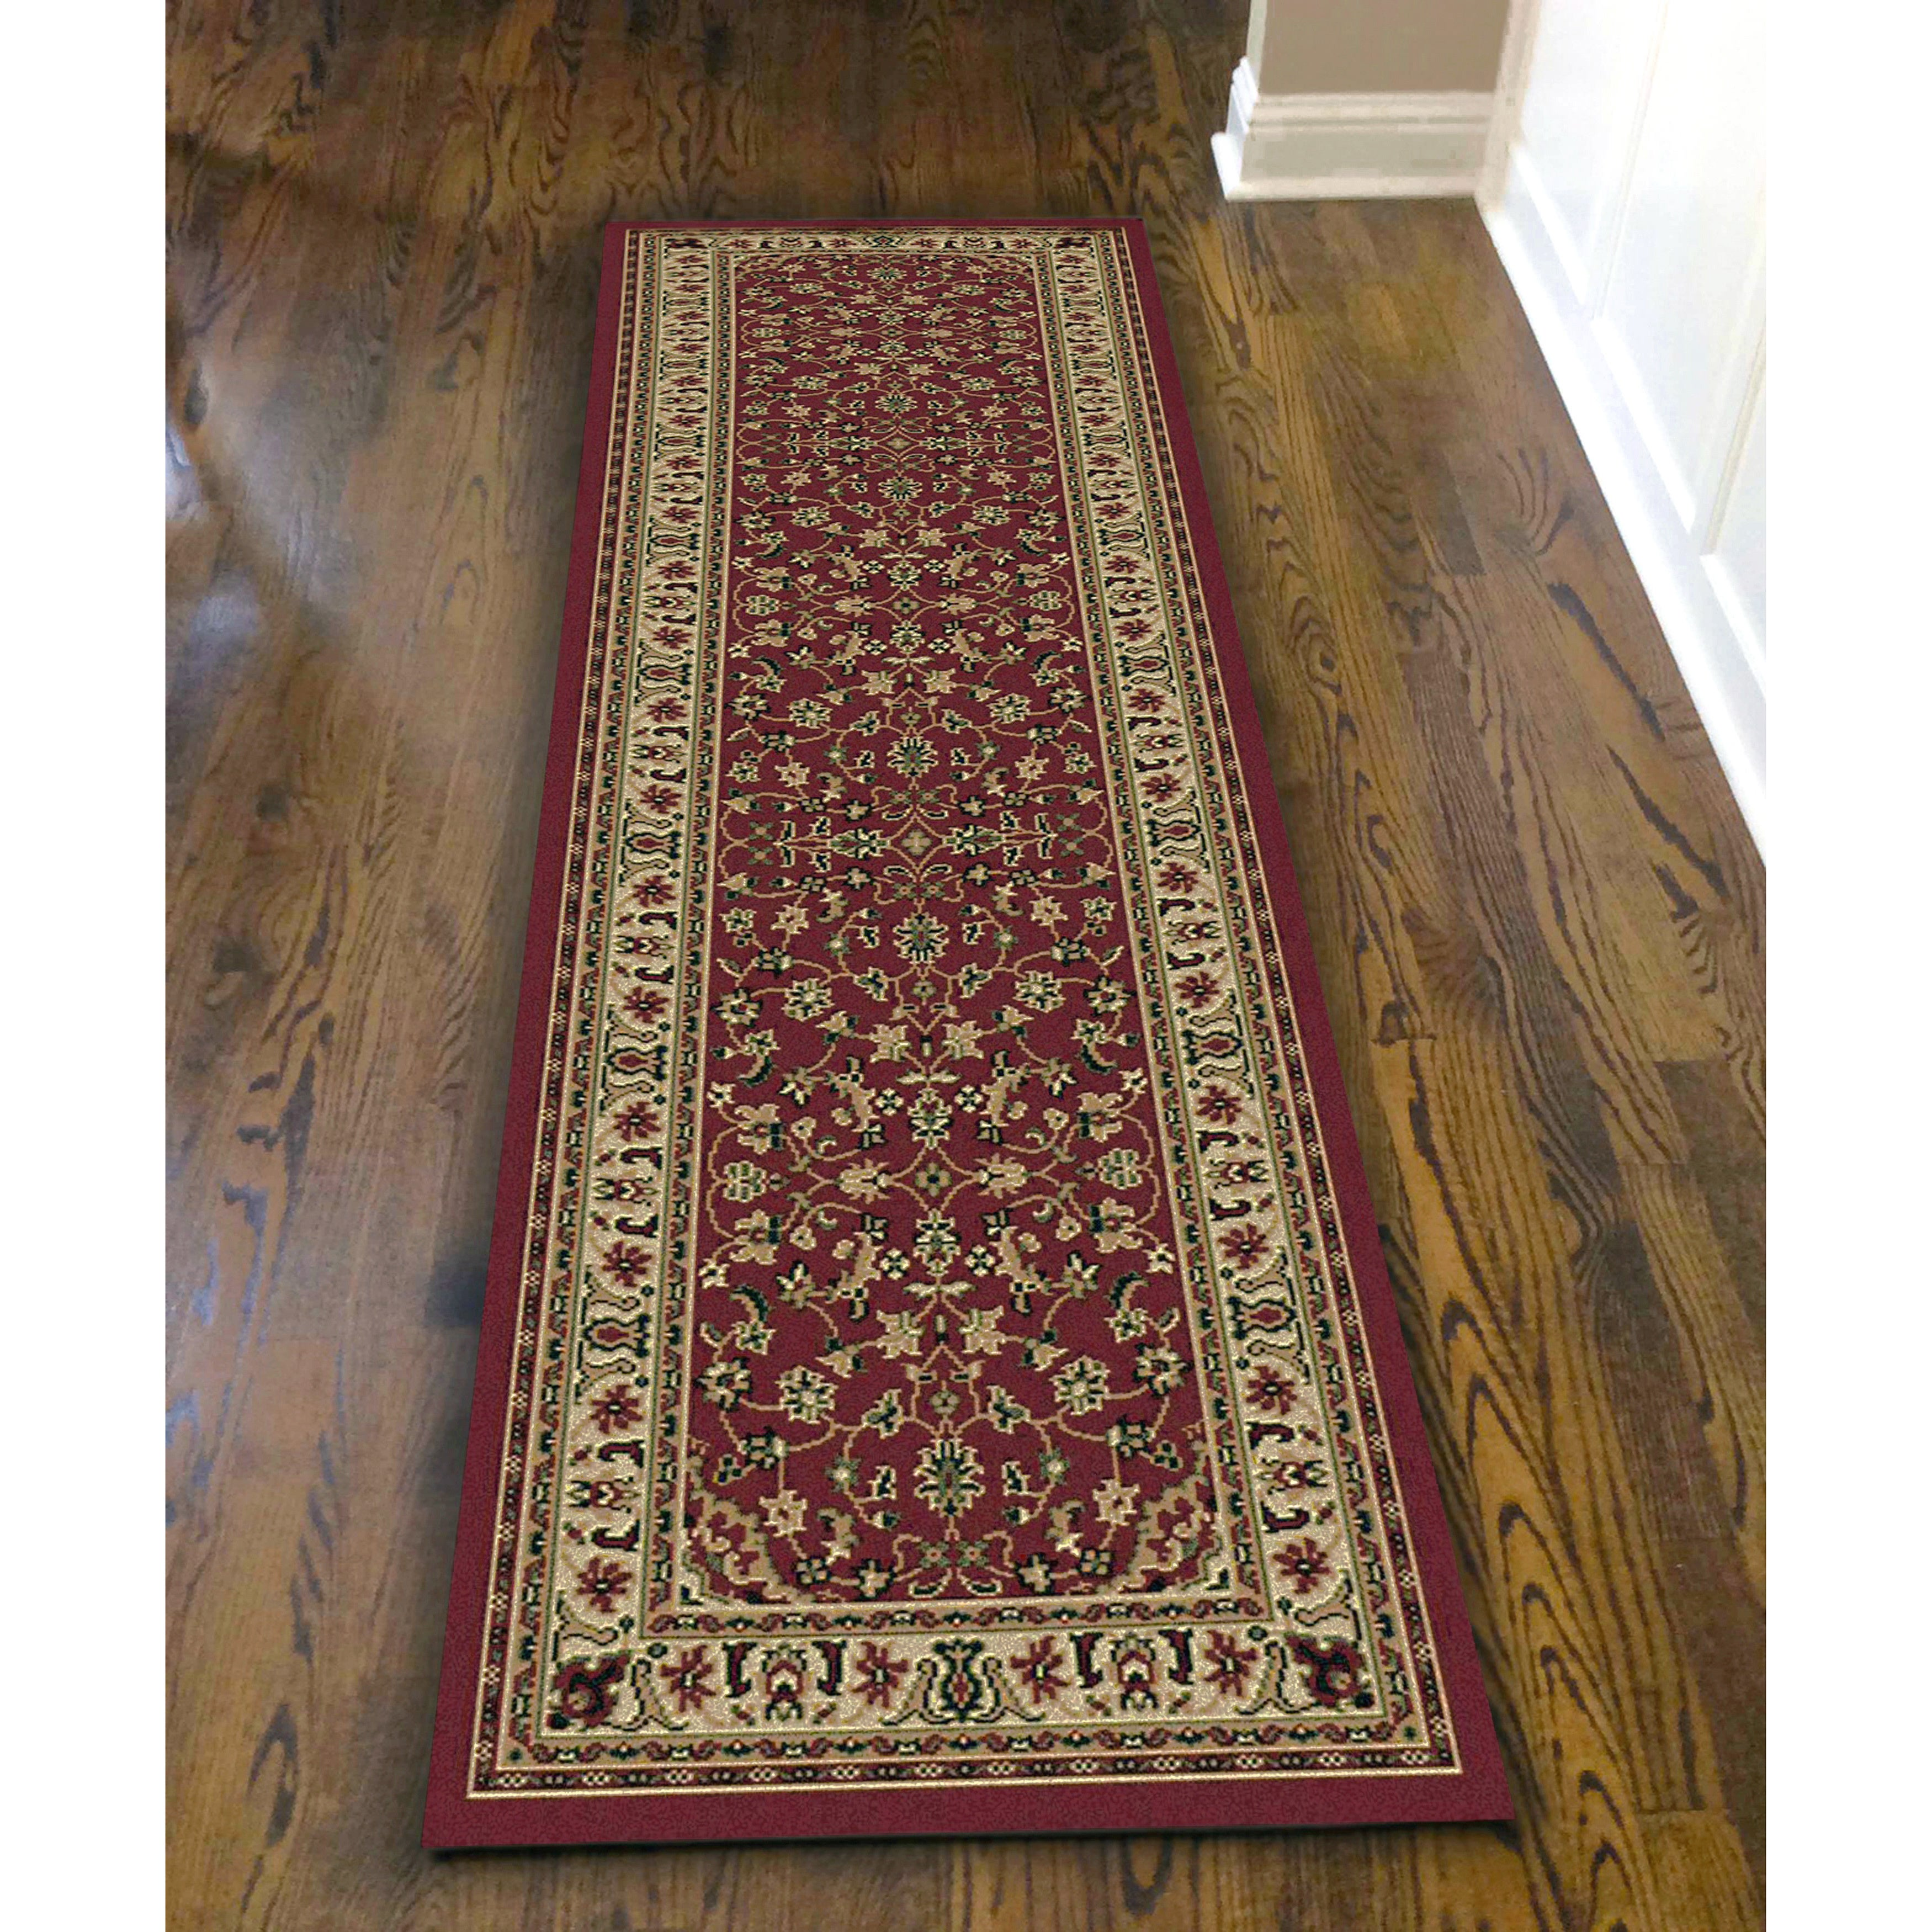 Buy Red Area Rugs Online At Our Best Deals Digital Burgundy Canvas Chocolate Leather